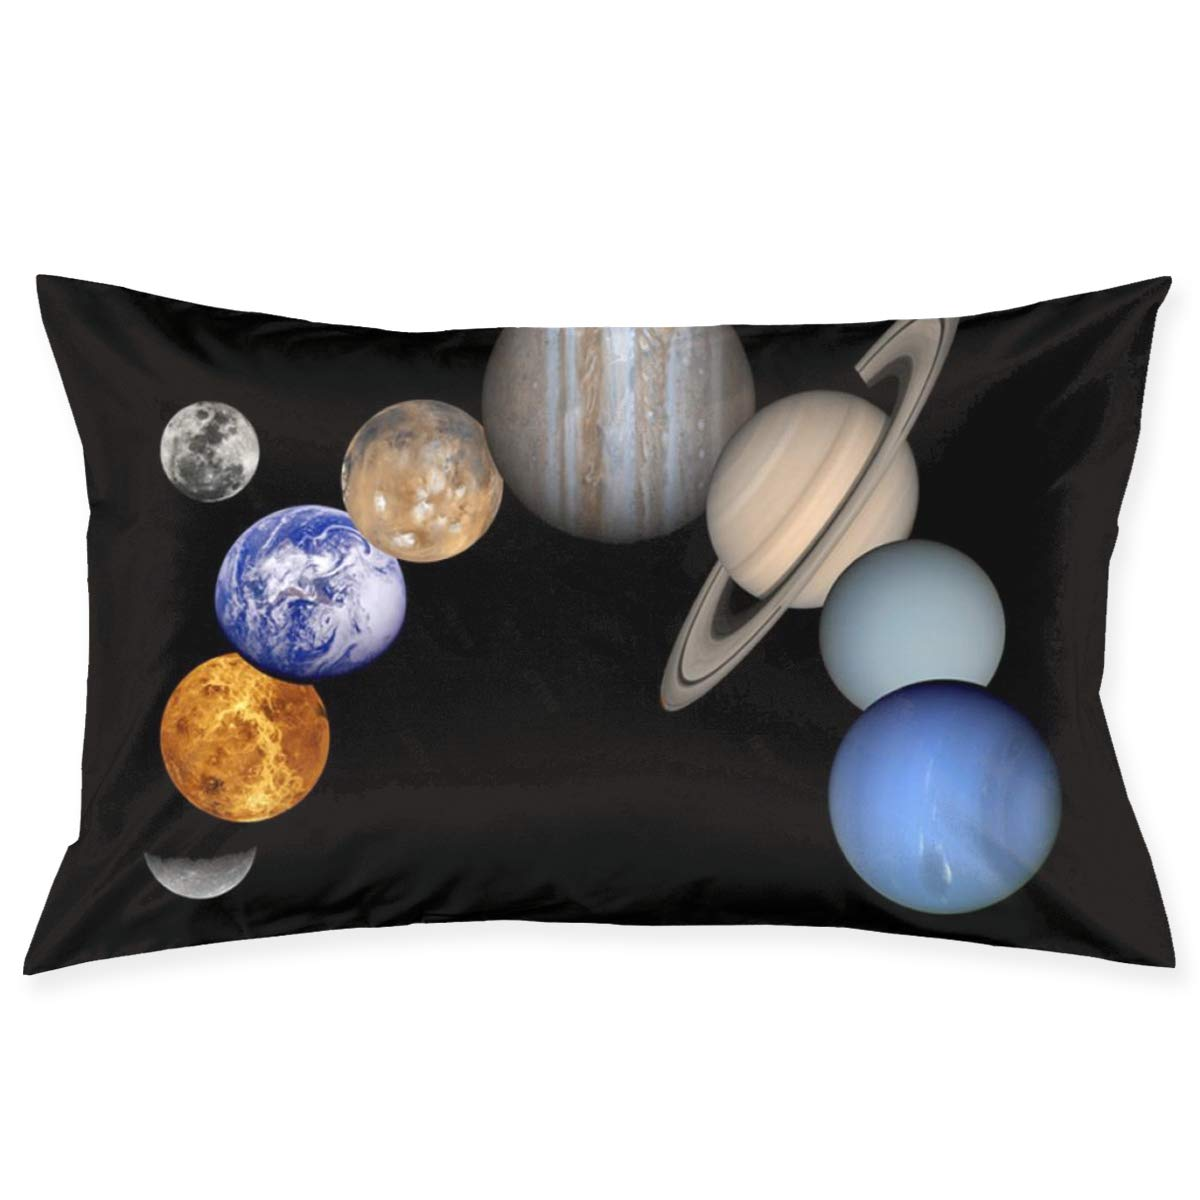 JAWKNA 100% Cotton Solar System Planets Space Science Pillows,Soft Cozy Small Throw Pillows 30 X 20 Inch